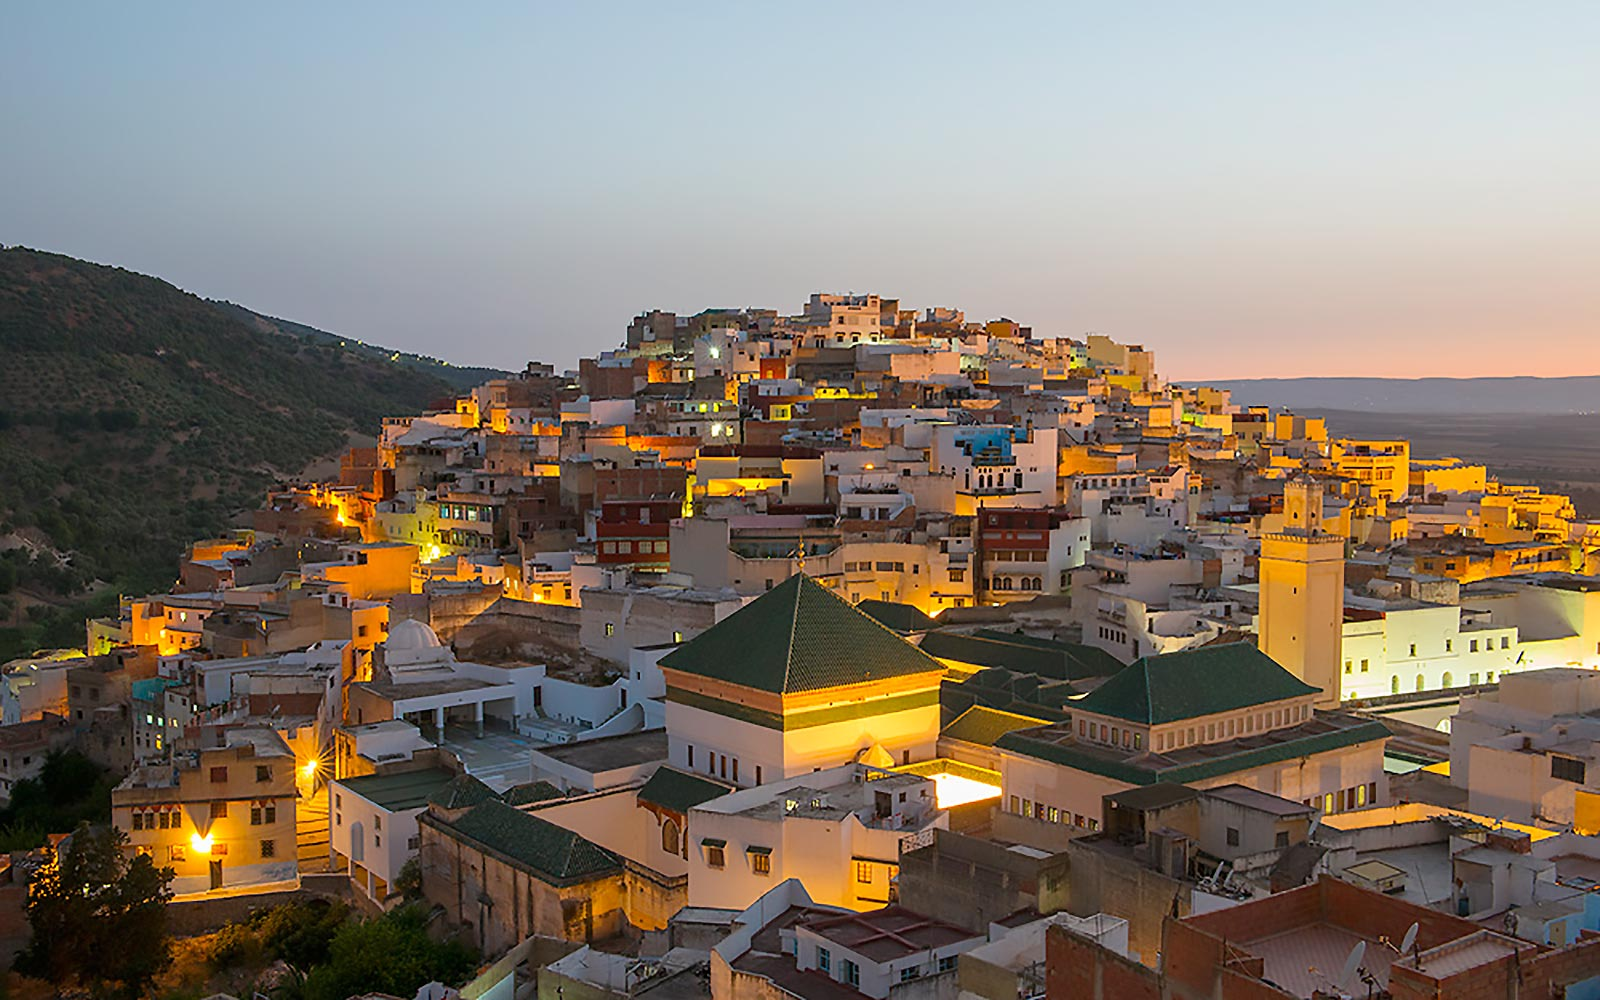 Moulay Idriss, Morocco's Undiscovered Jewel